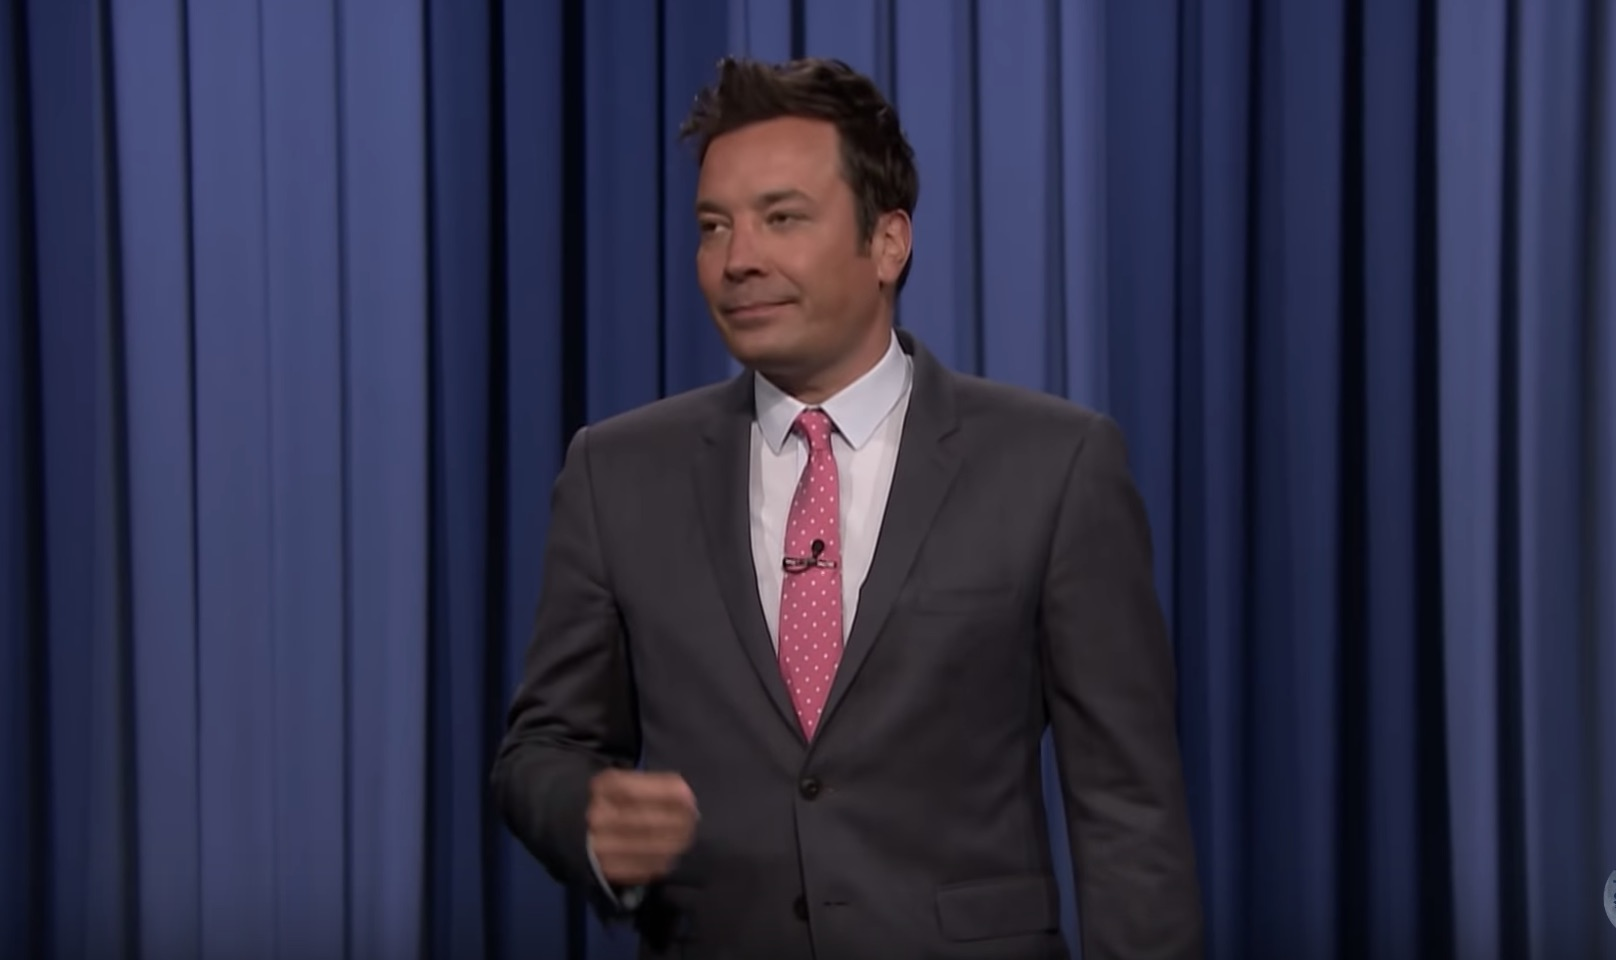 All our favorite late-night hosts epically slammed Trump over his Russia comments